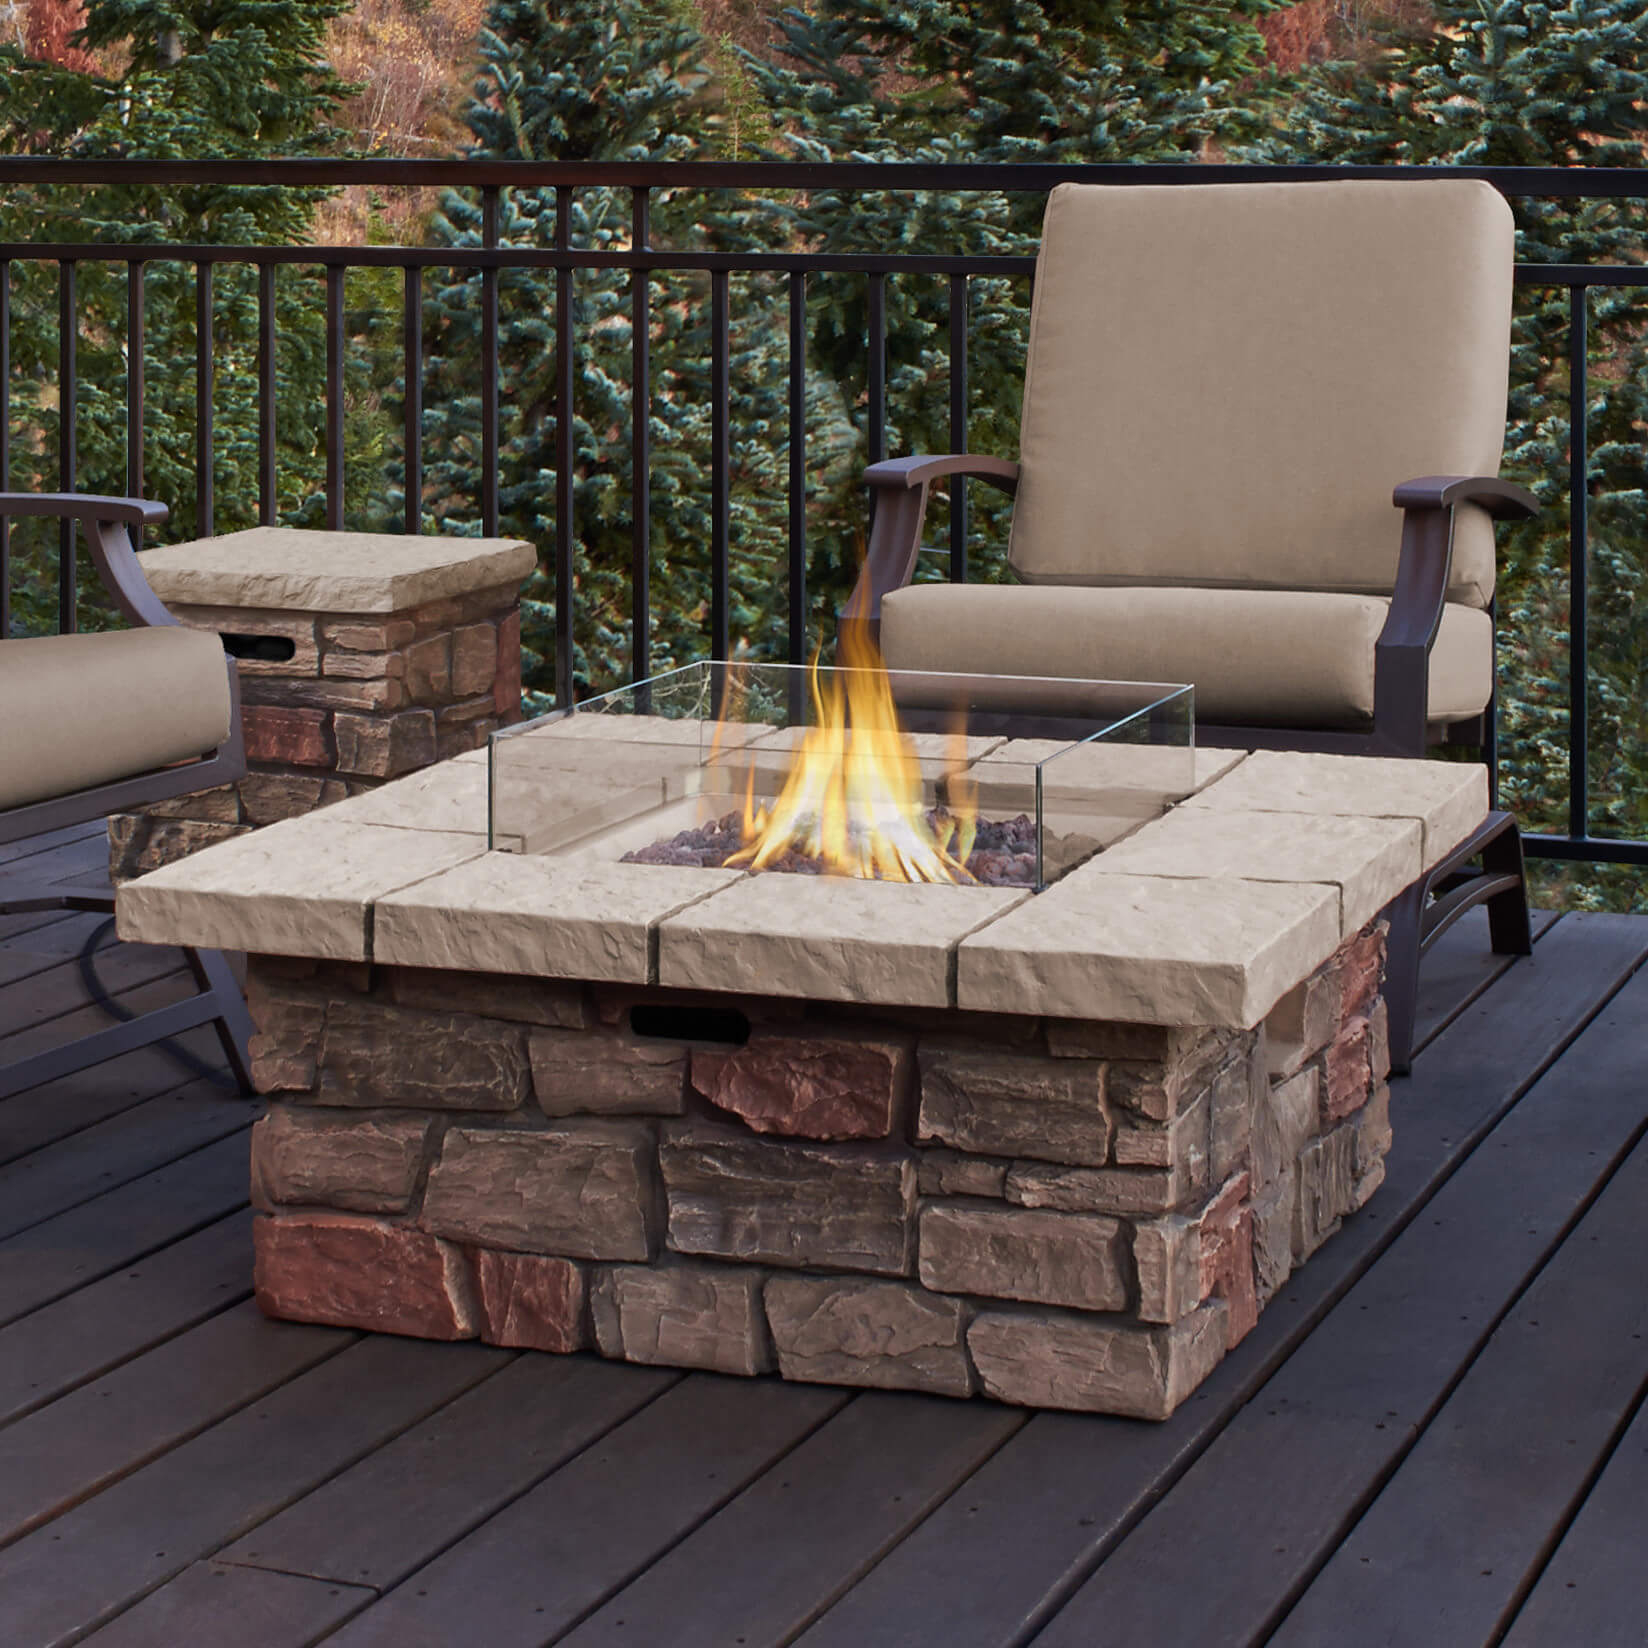 Top 15 Types Of Propane Patio Fire Pits With Table Buying Guide with proportions 1648 X 1648